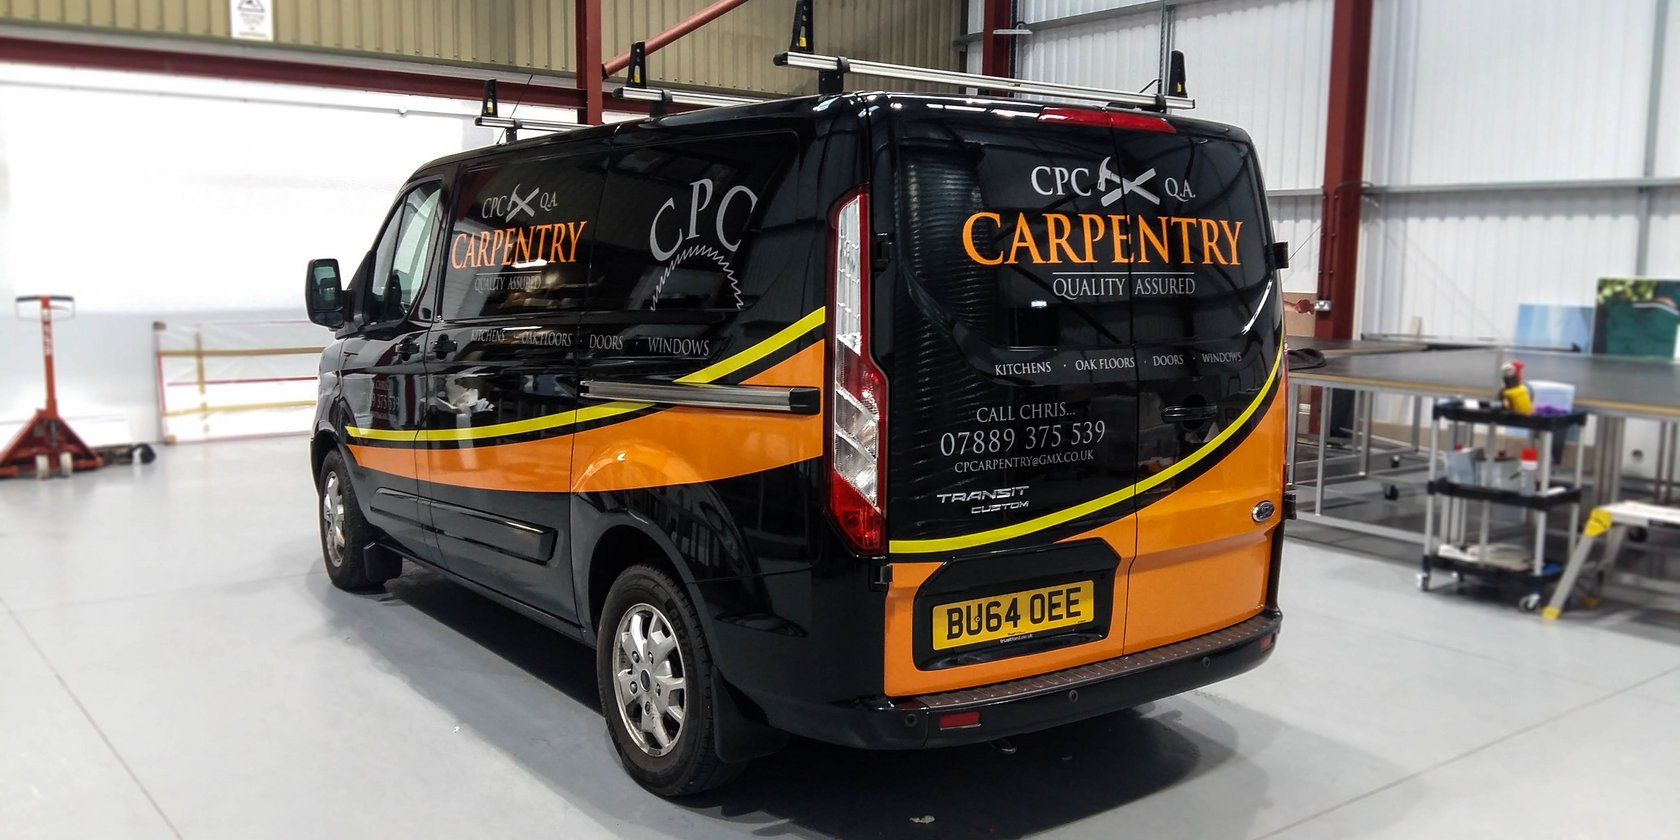 Van Signwriting CPC Carpentry